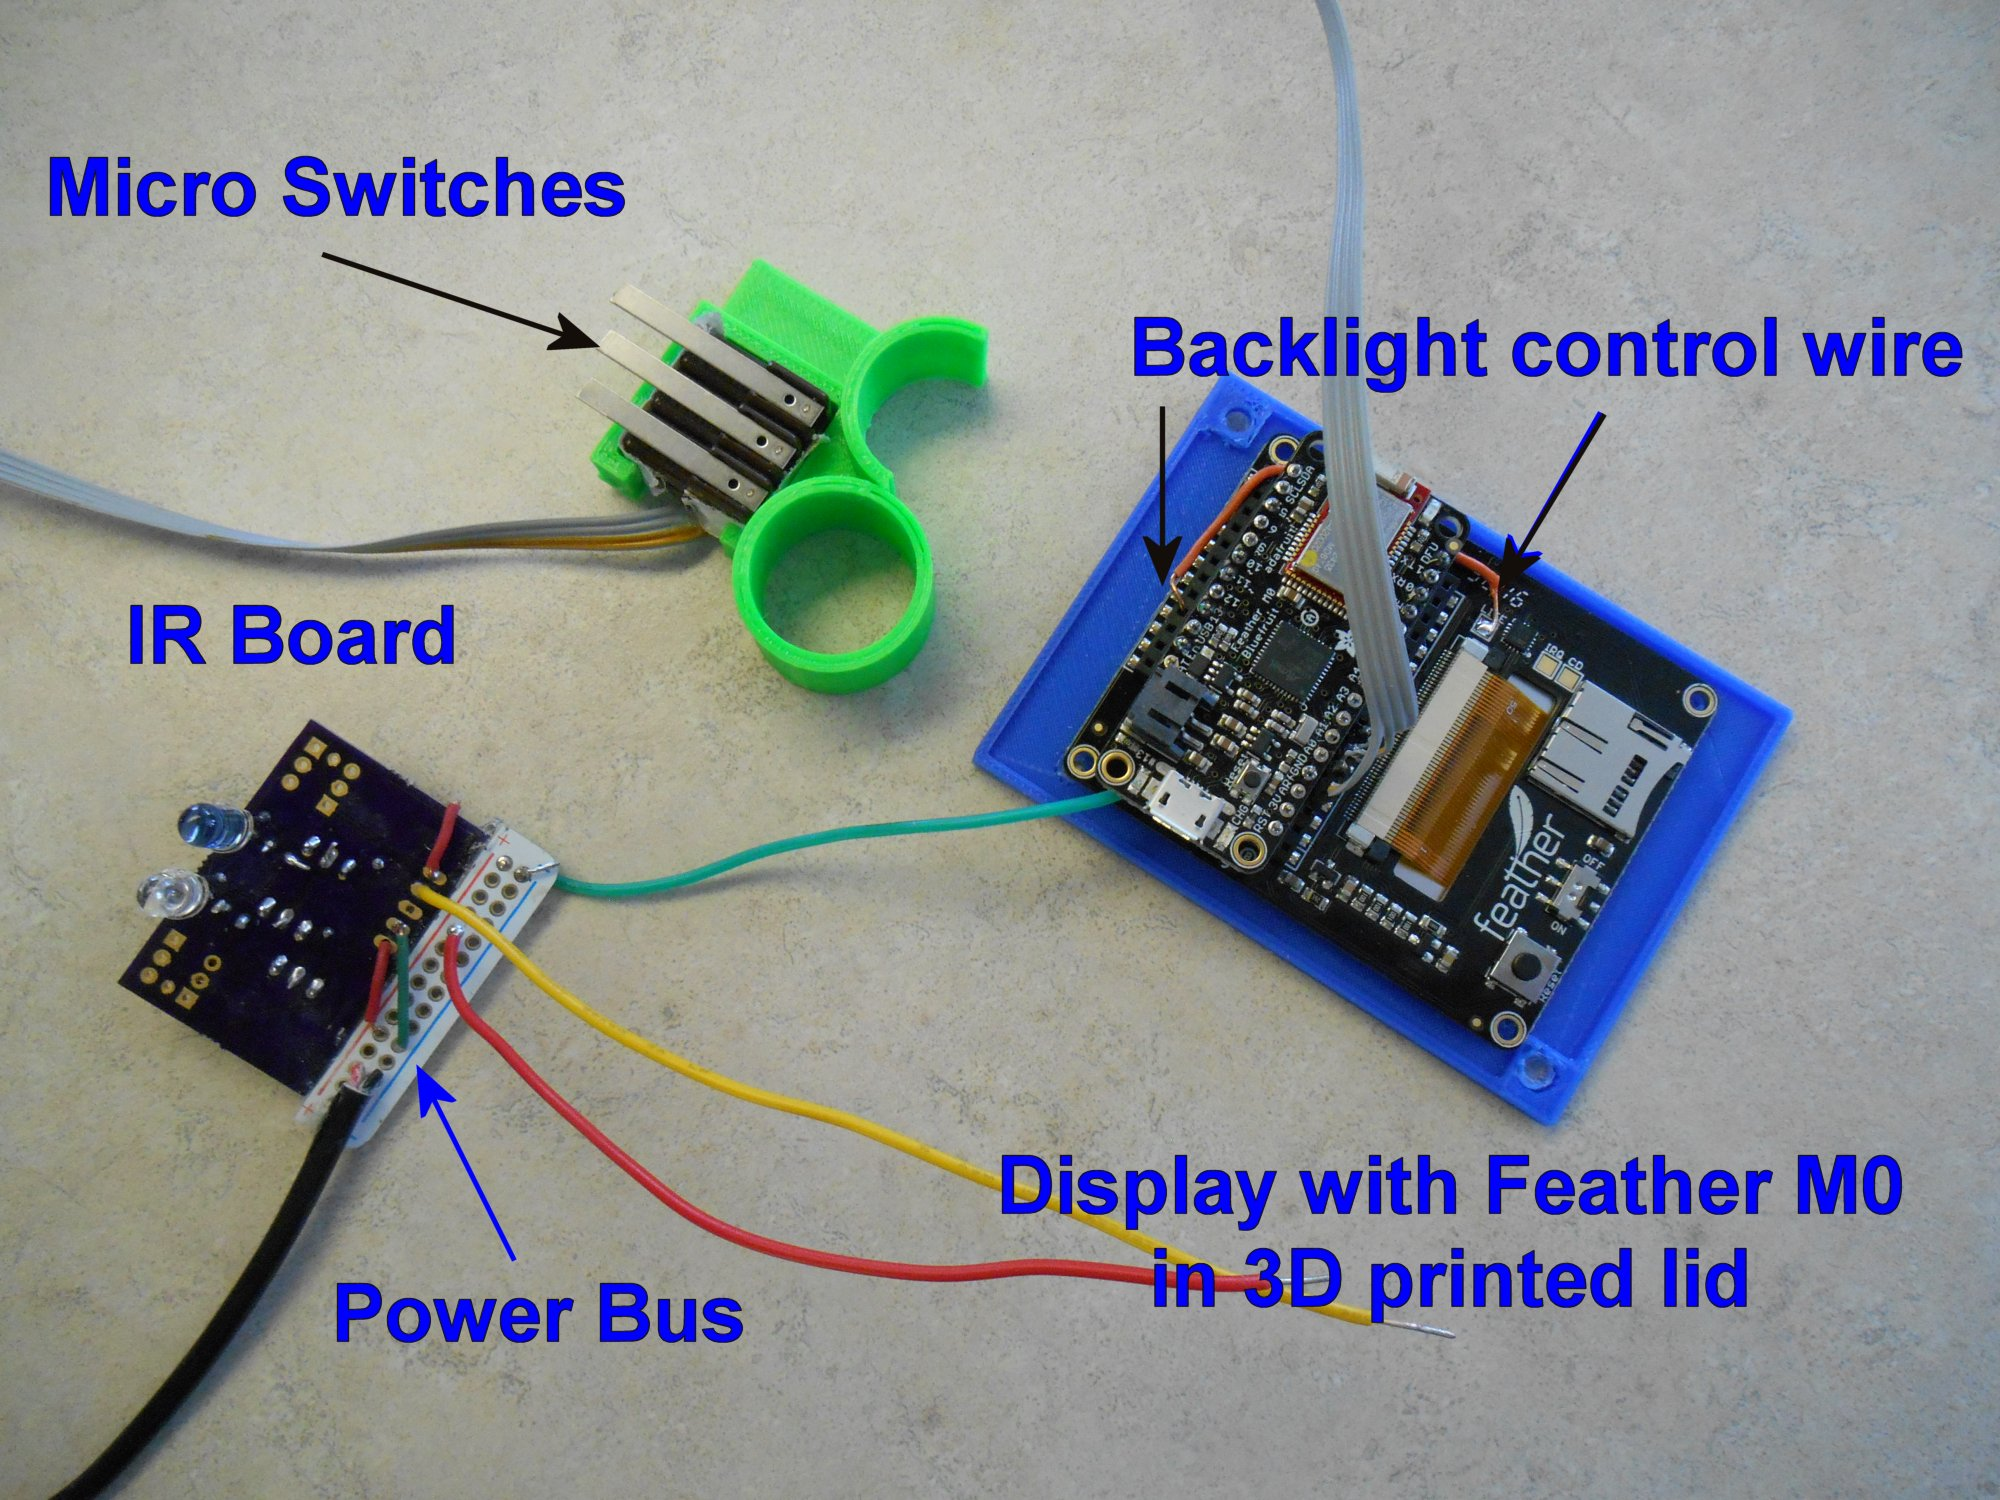 Assistive Technology Cys Tech Talk Wiring Garage Lights Moreover Tiny House With Screen Porch On Although The Feather Boards Have A Built In Battery Connector And Charging Circuit I Decided To Power Device From An External 5v